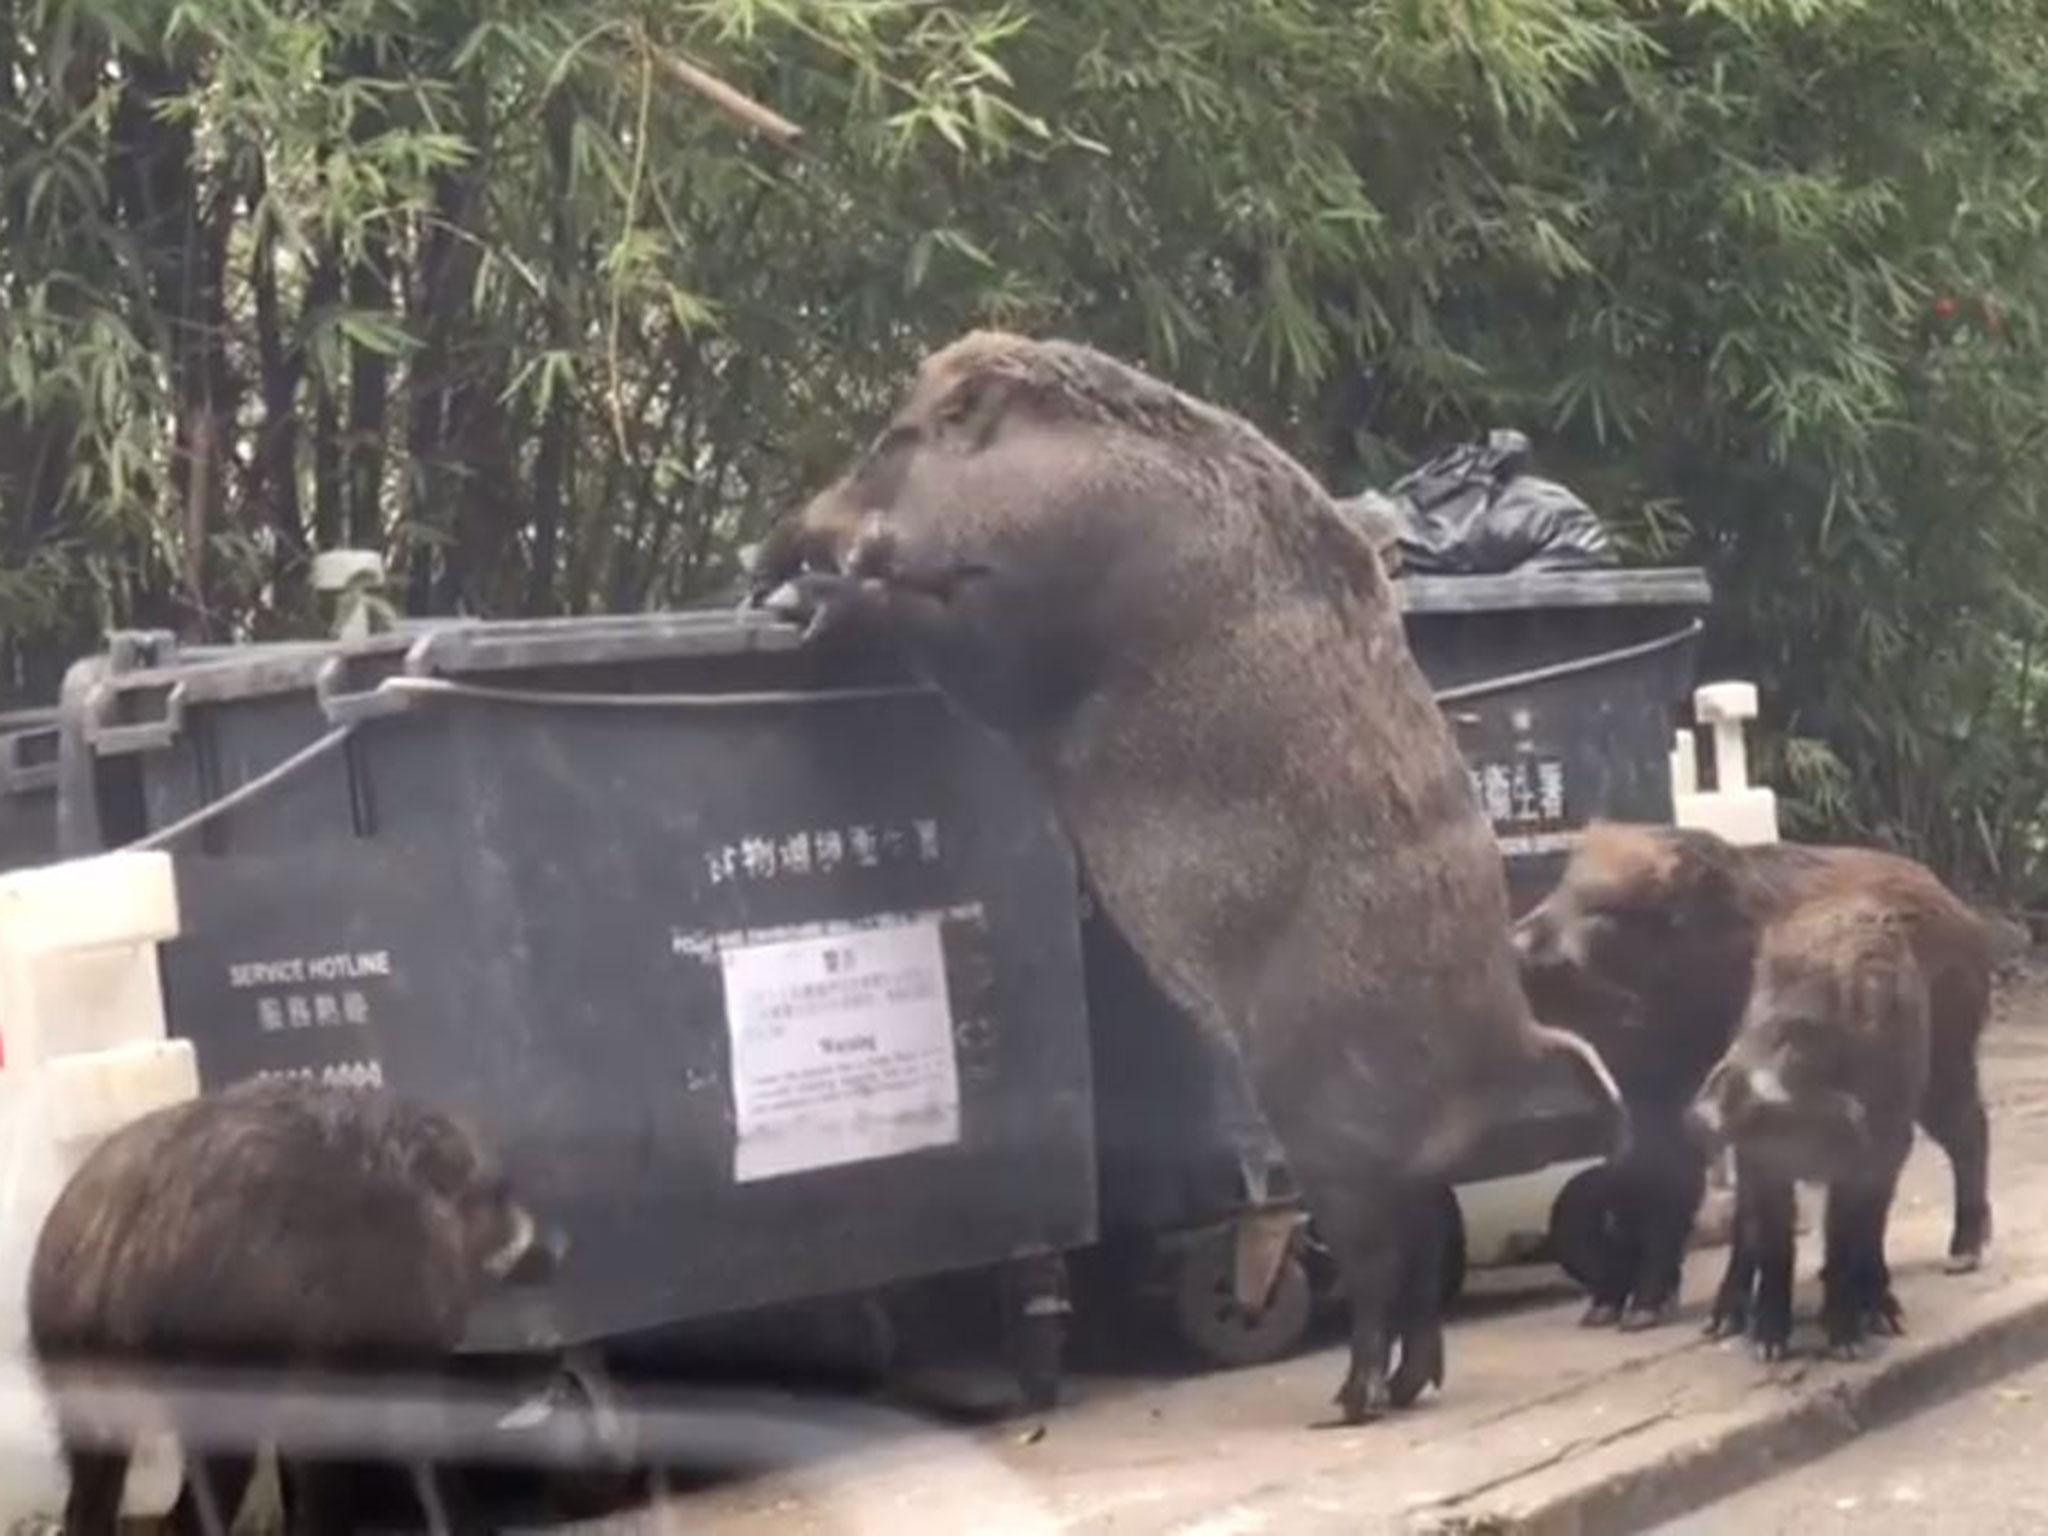 Giant wild boar eats from rubbish bin near school | The ...